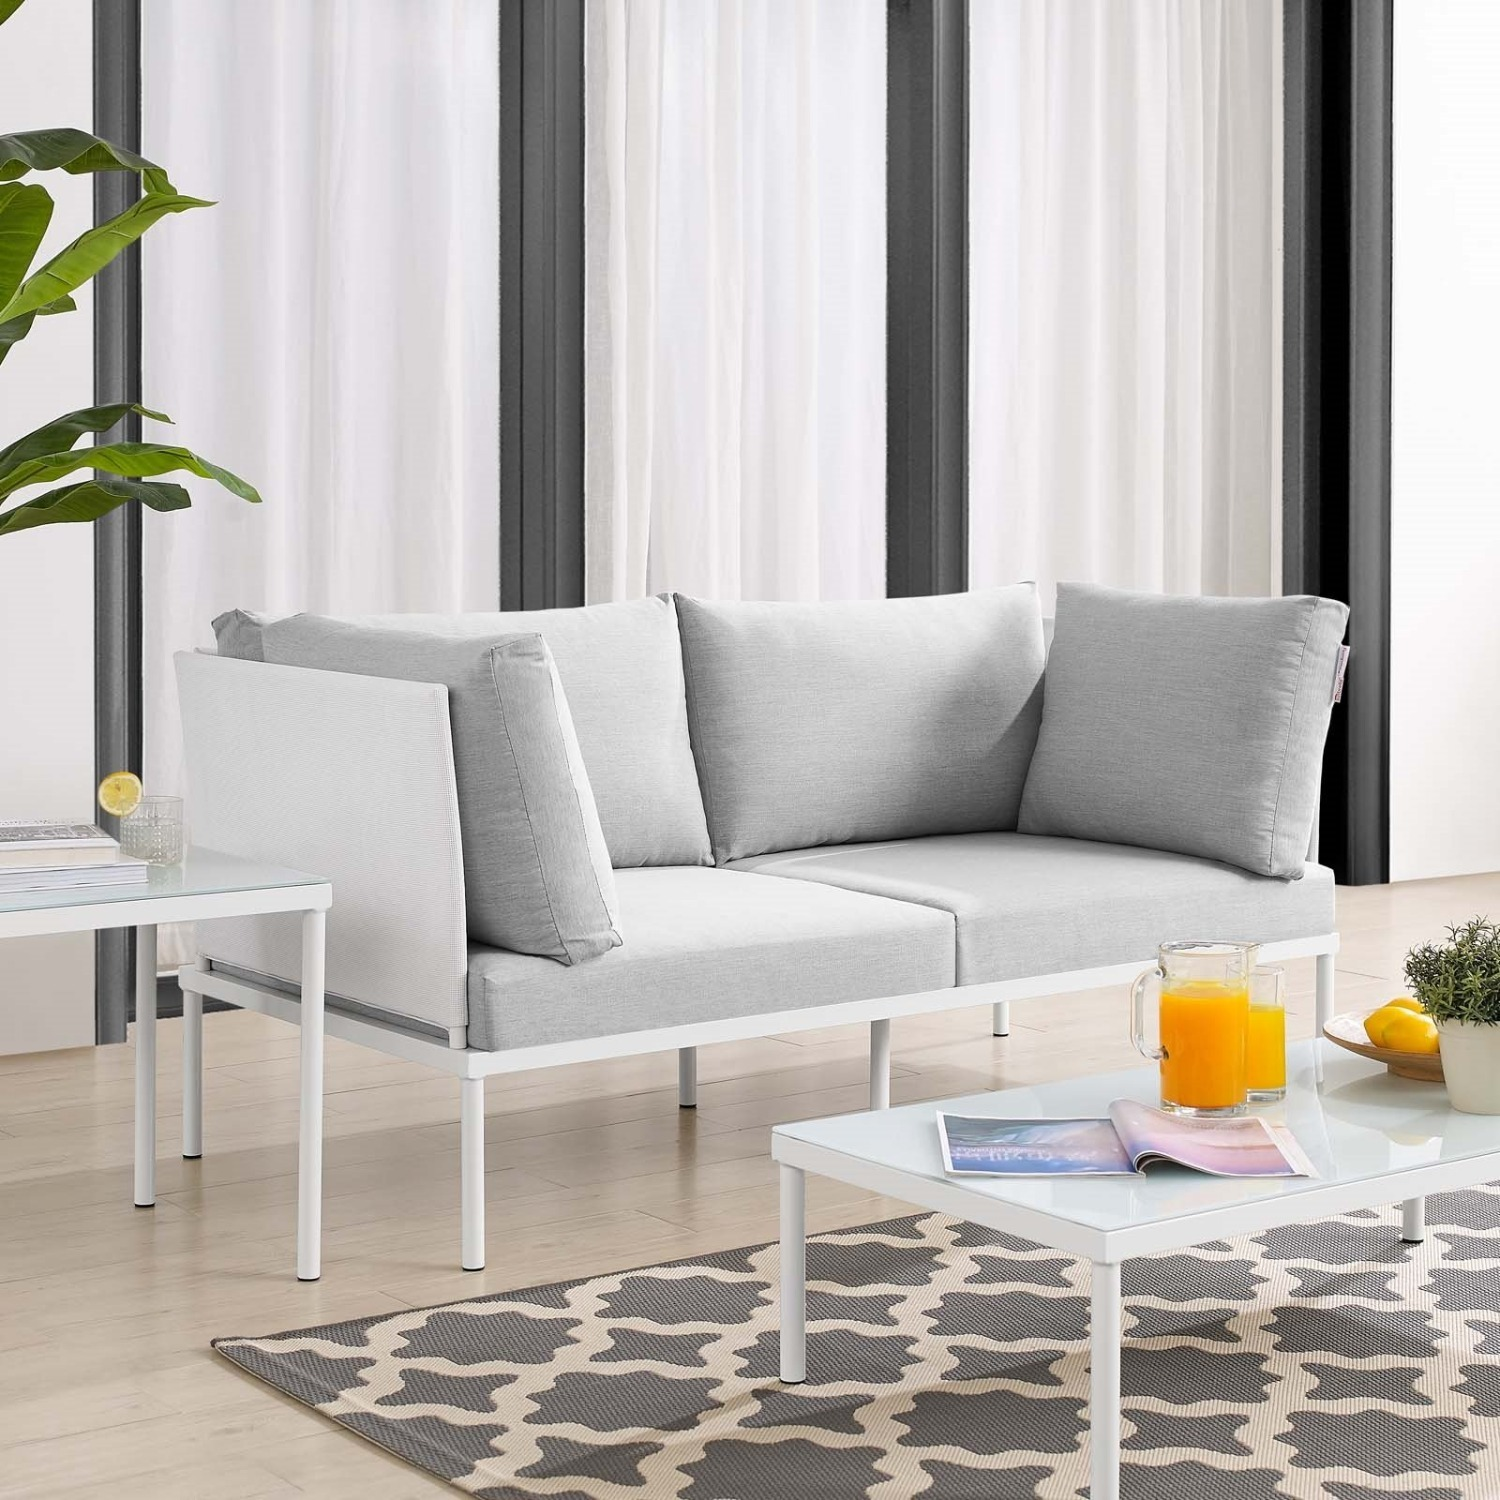 Outdoor Loveseat In White Frame & Gray Cushion - image-4